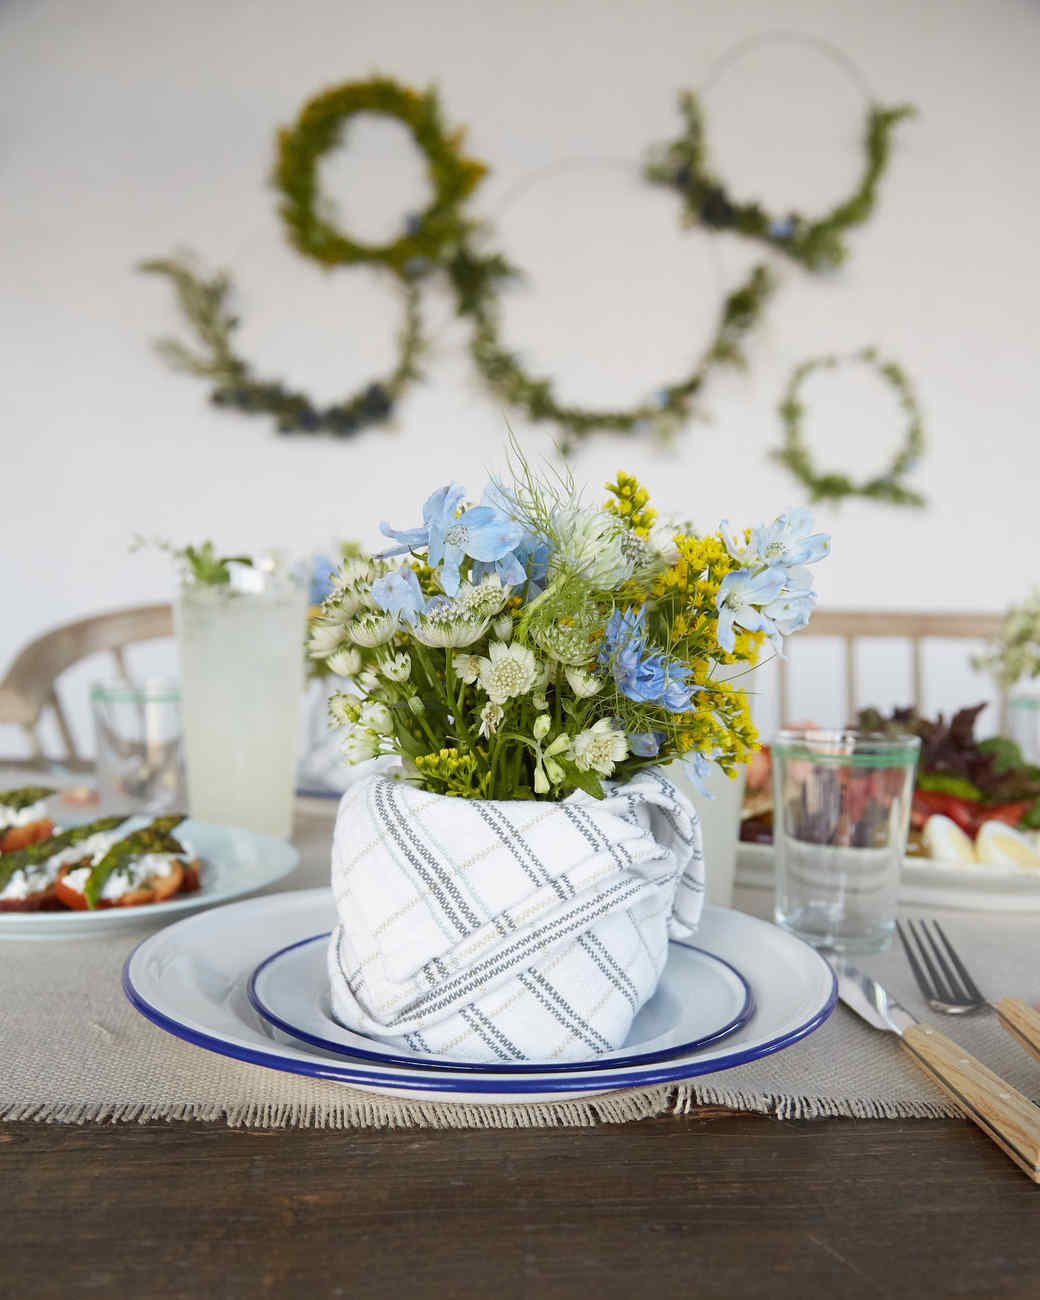 A Napkin Styled As A Vase Holds A Bouquet Of Spring Flowers.